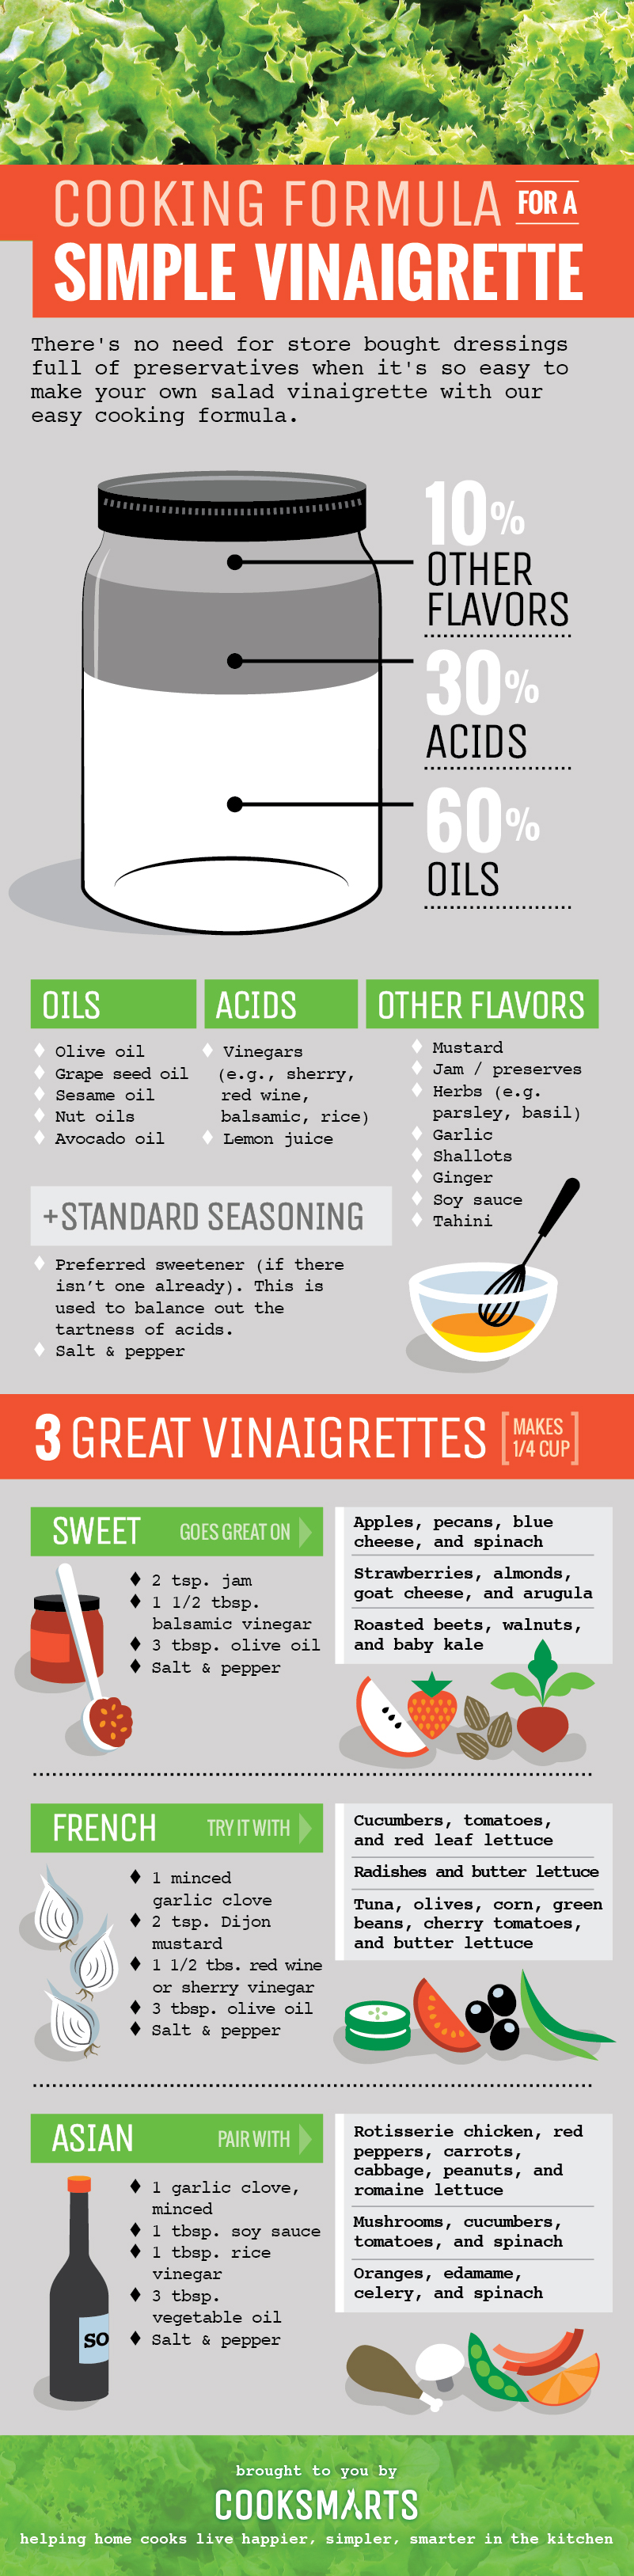 Cooking Formulas for Salad Vinaigrettes via @cooksmarts #infographic